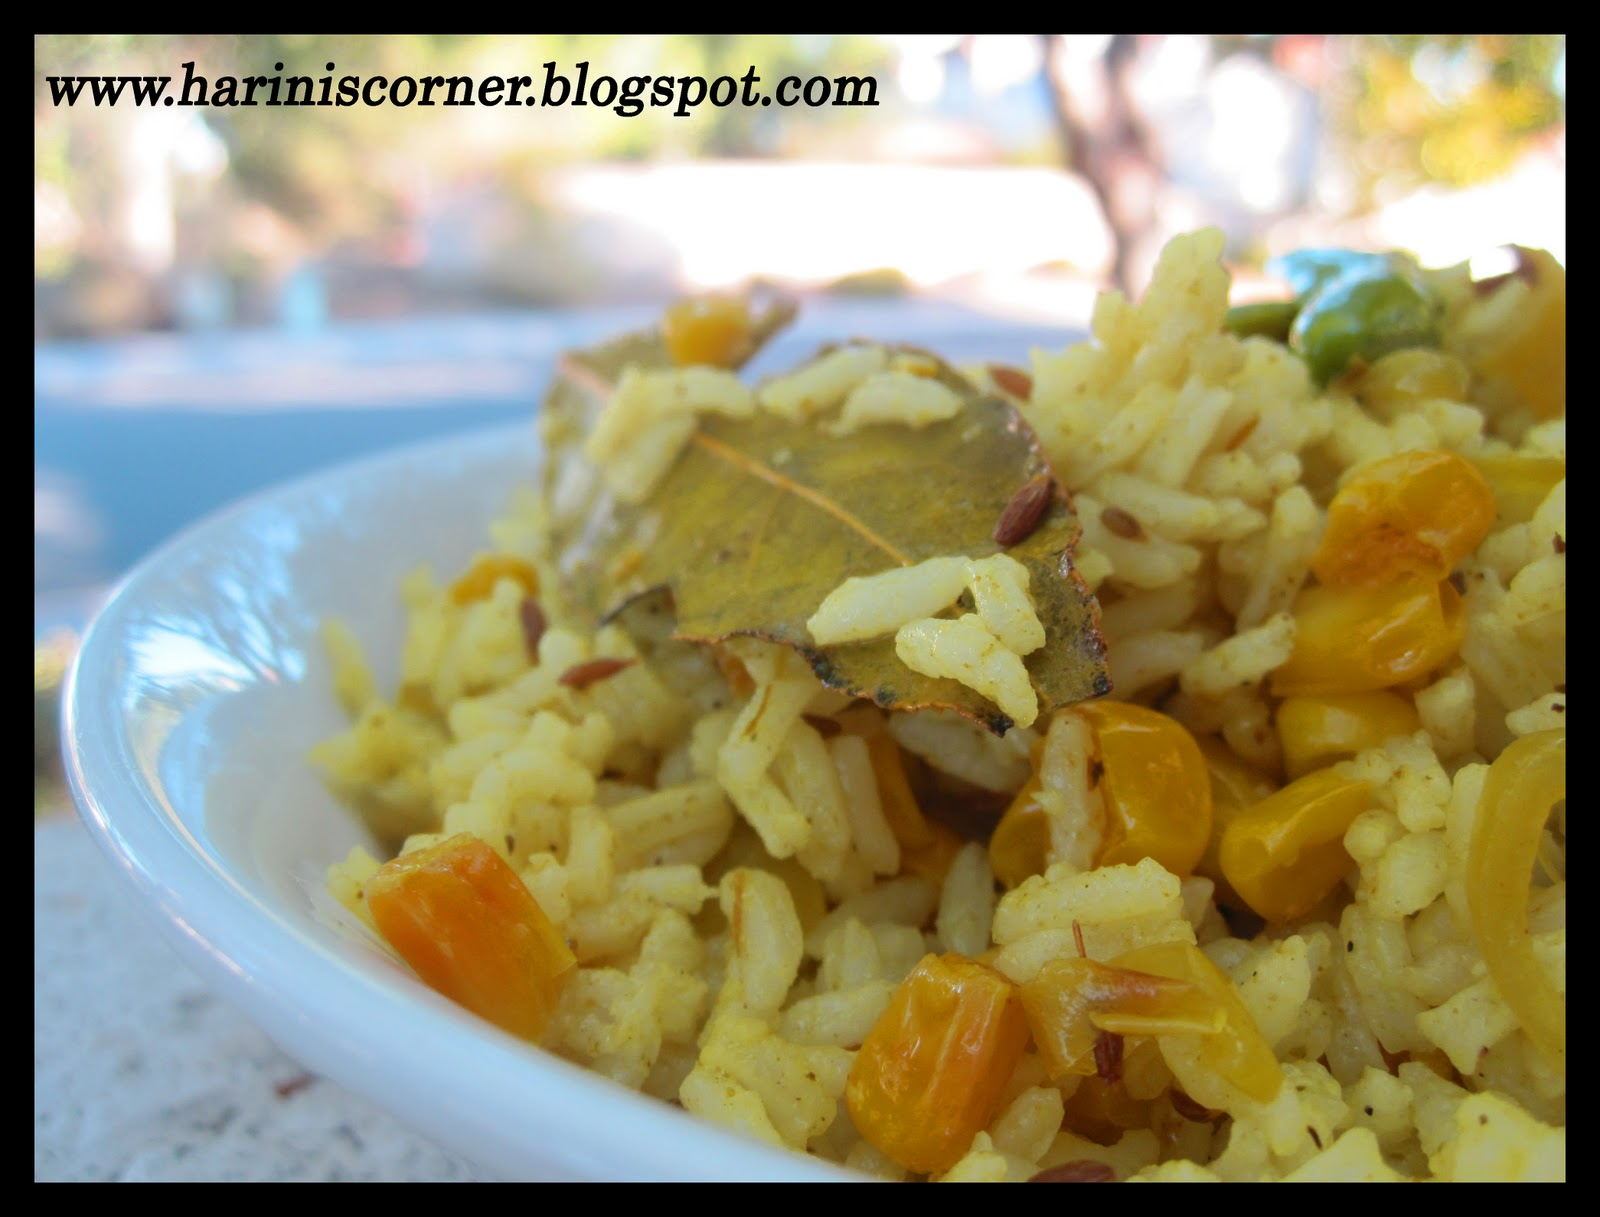 Sugar spice sweet corn rice how to make pressure cook the rice with 15 cups of water for 3 whistles in a pressure cooker cool the rice heat a little oil in a pan and fry the cloves ccuart Choice Image